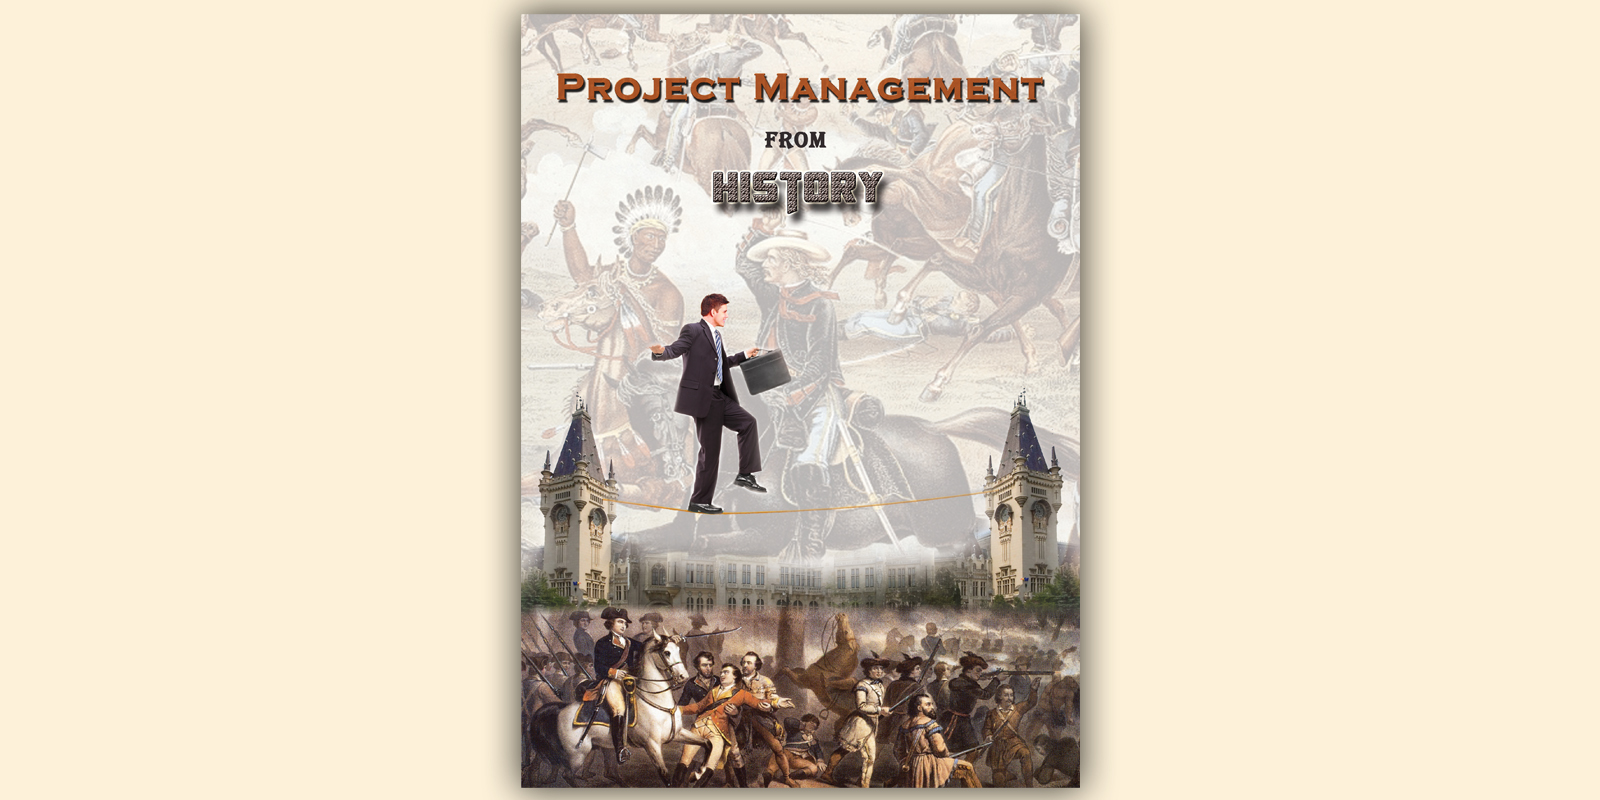 Book Cover Illustration History : Book cover design for project management from history